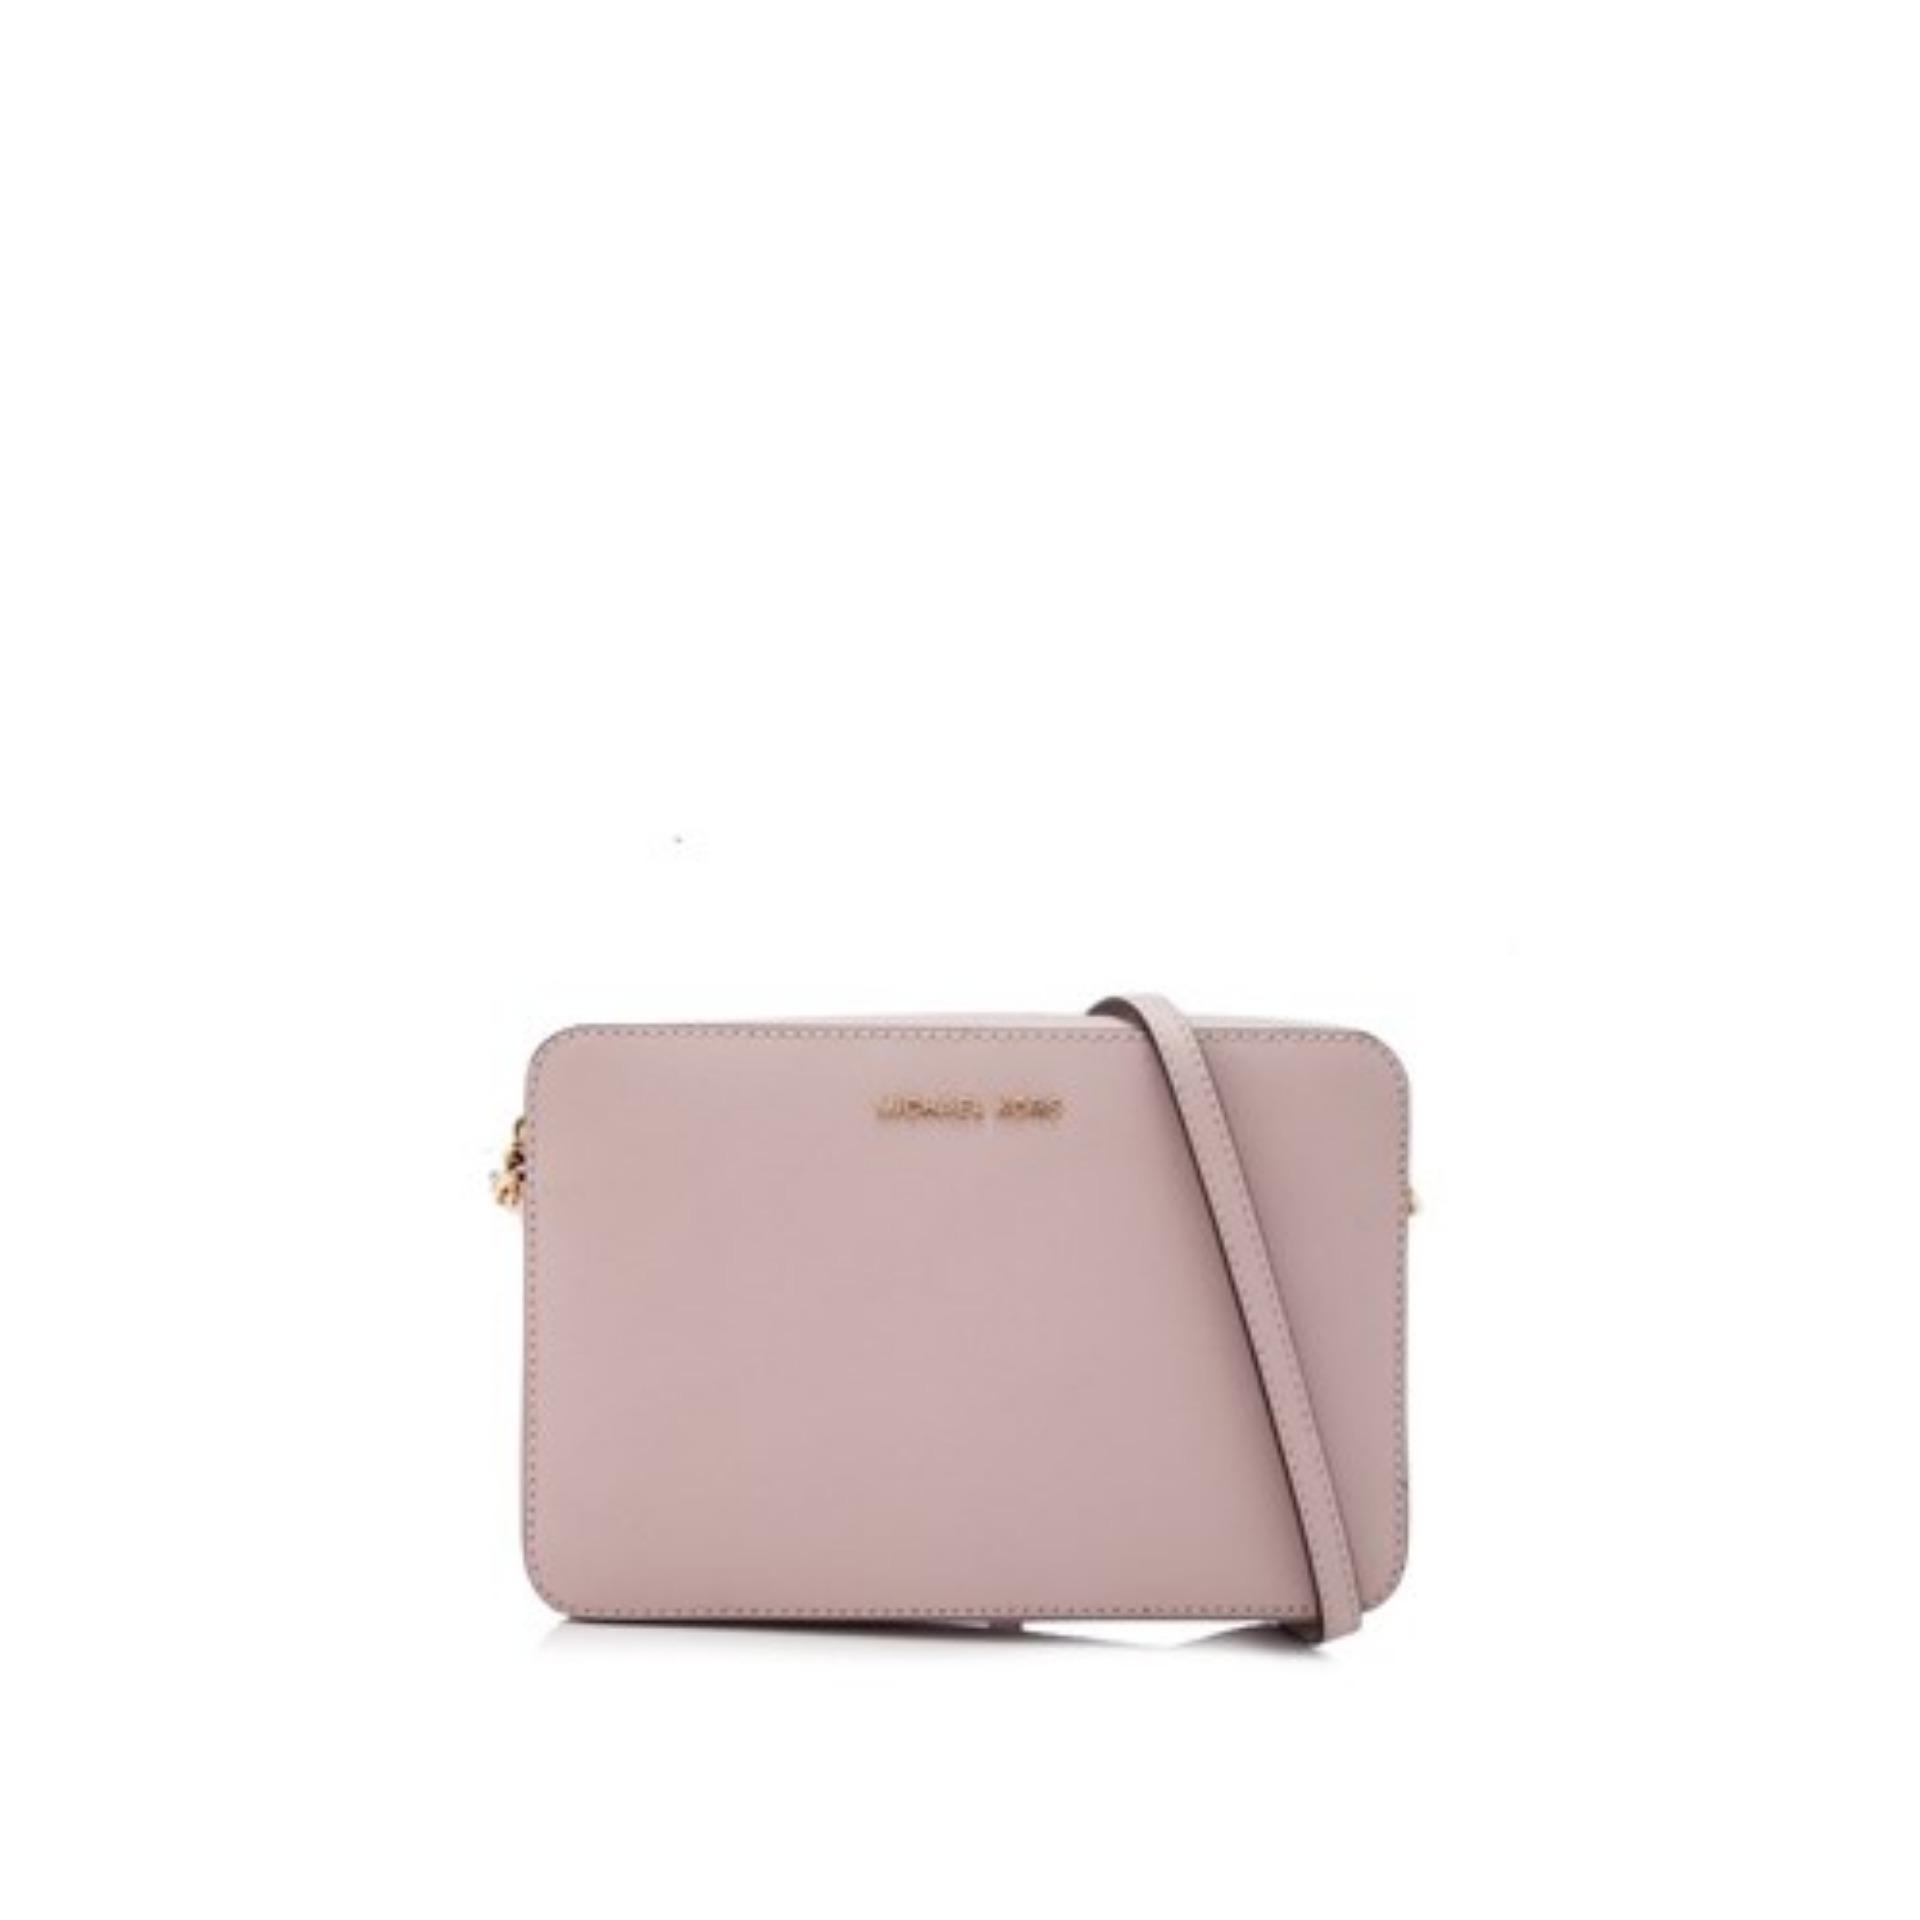 d4da250039b8 Michael Kors Jet Set East West Large Crossbody Bag (Soft Pink) #  32S4GTVC3LSOFTPINK